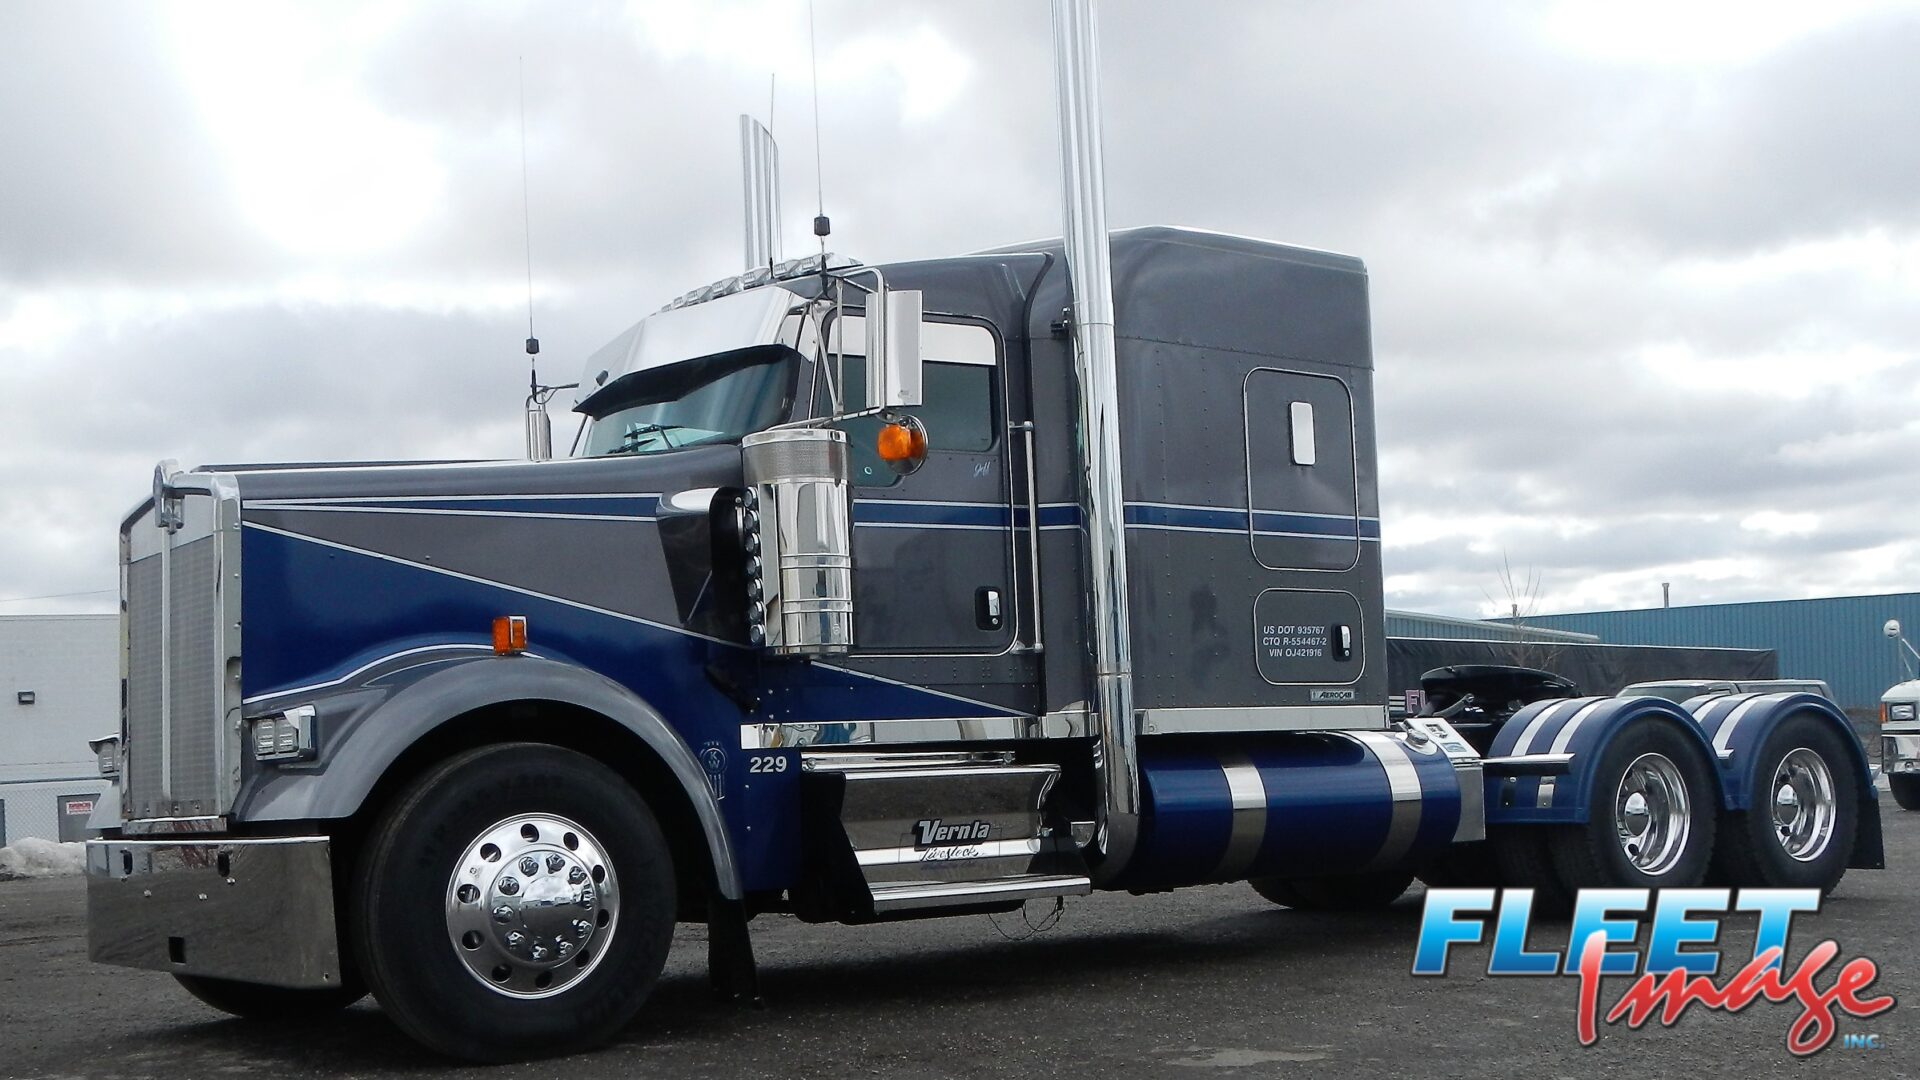 Vernla black and blue truck